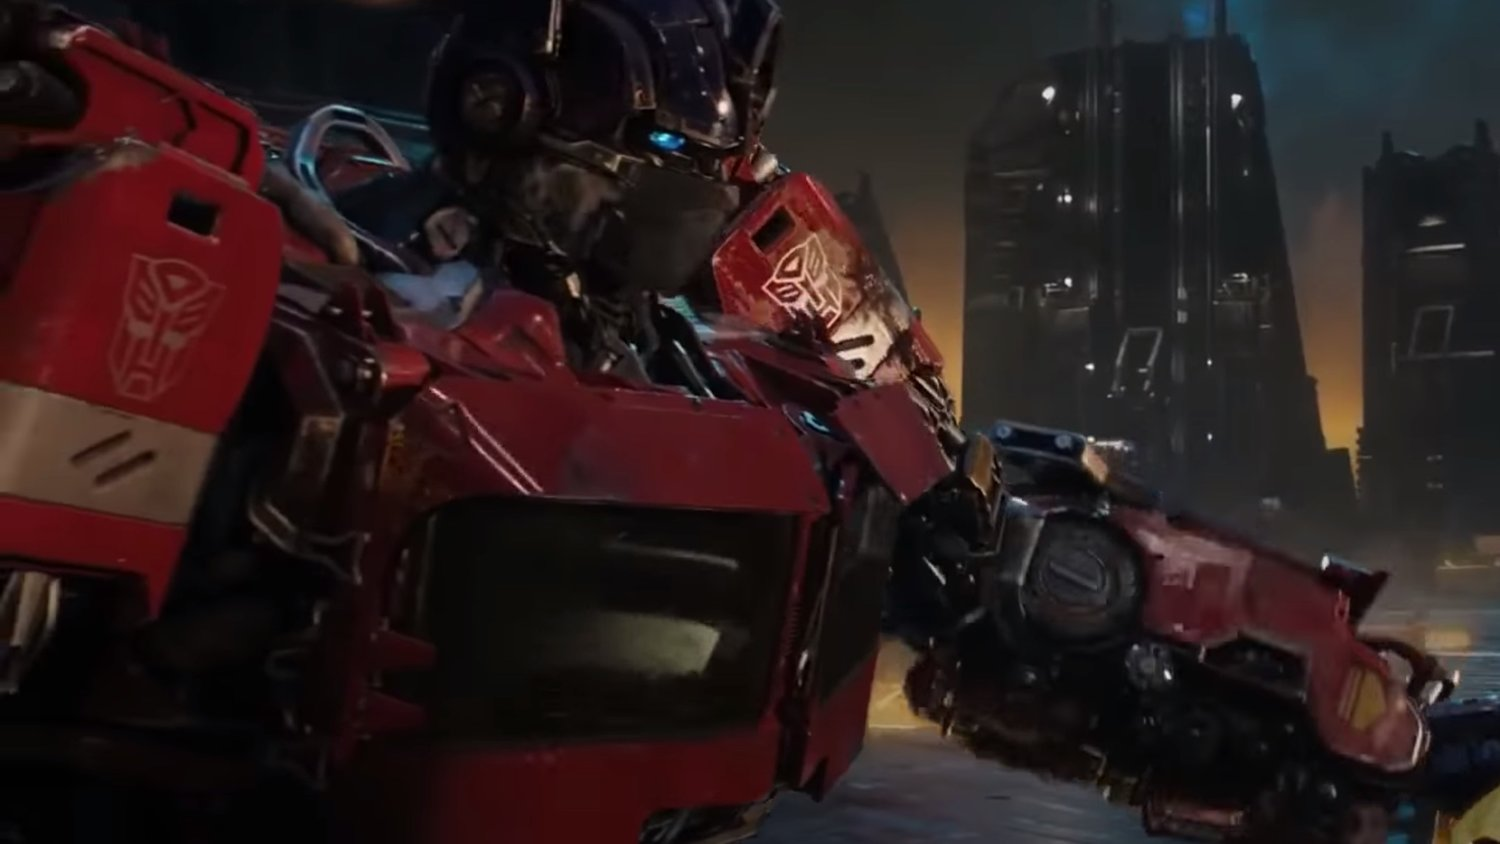 Transformers Producer Confirms Sequel For The Last Knight And